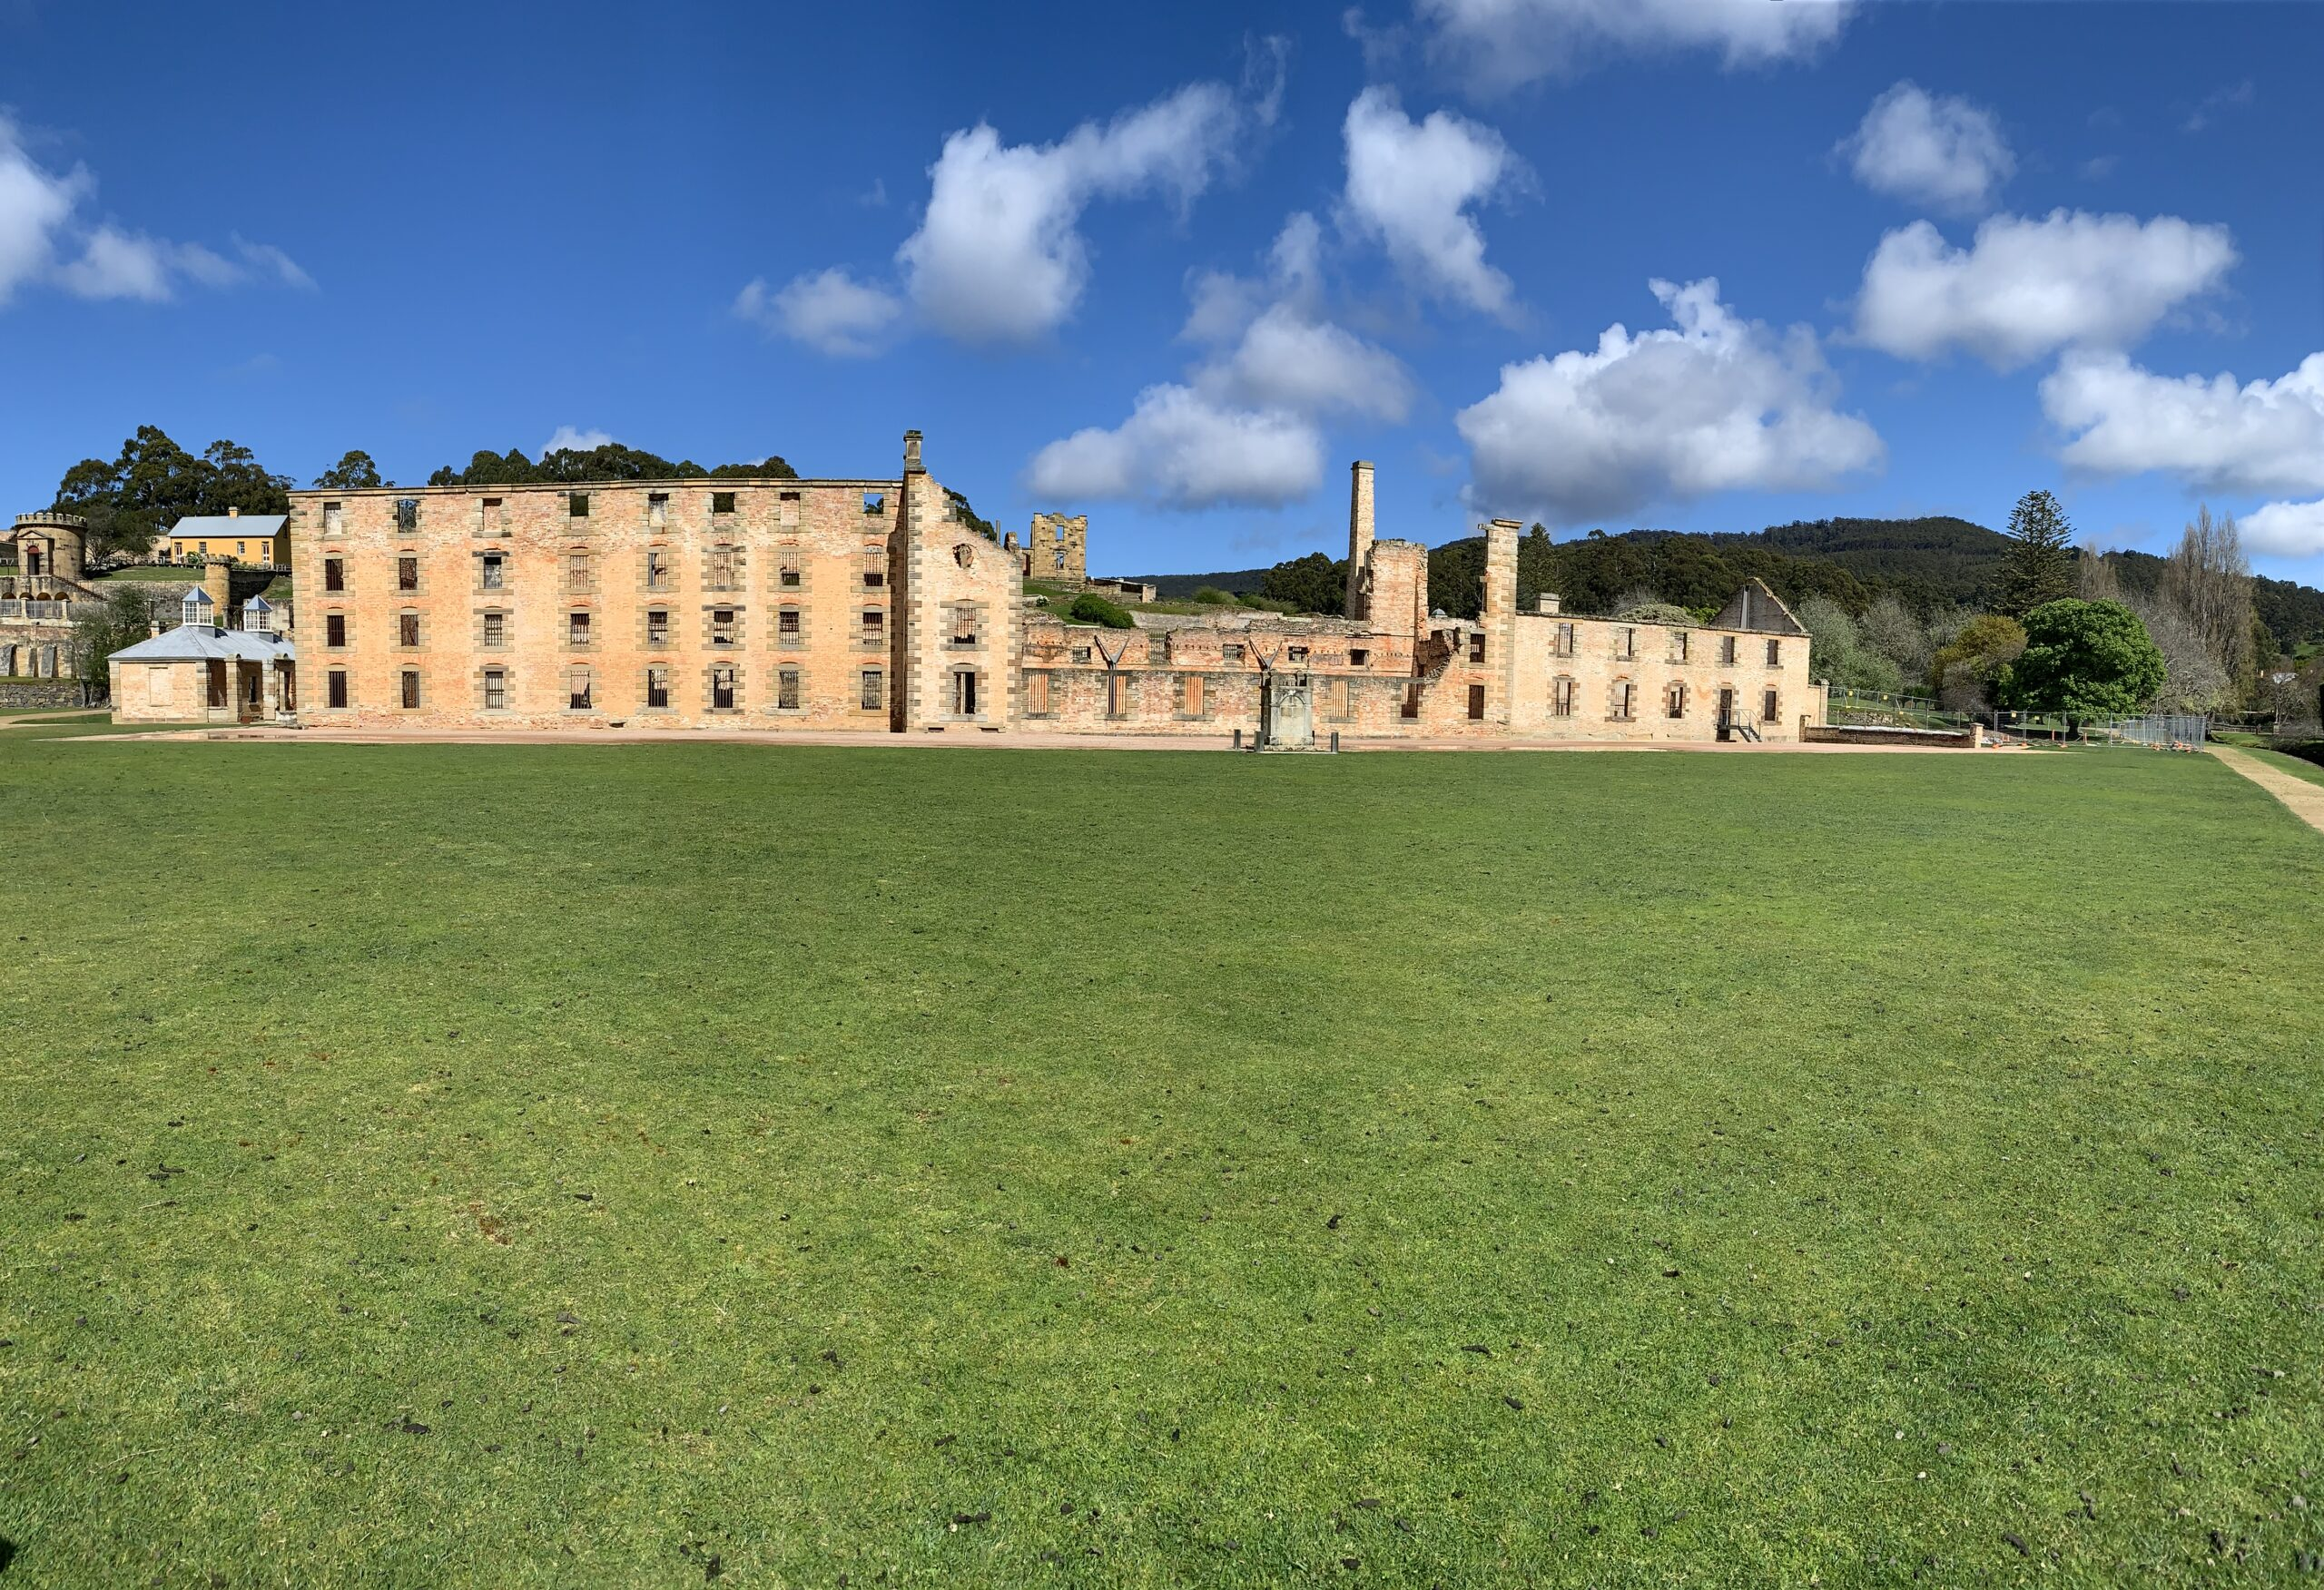 Shuttle to Port Arthur Historic Site and Unzoo